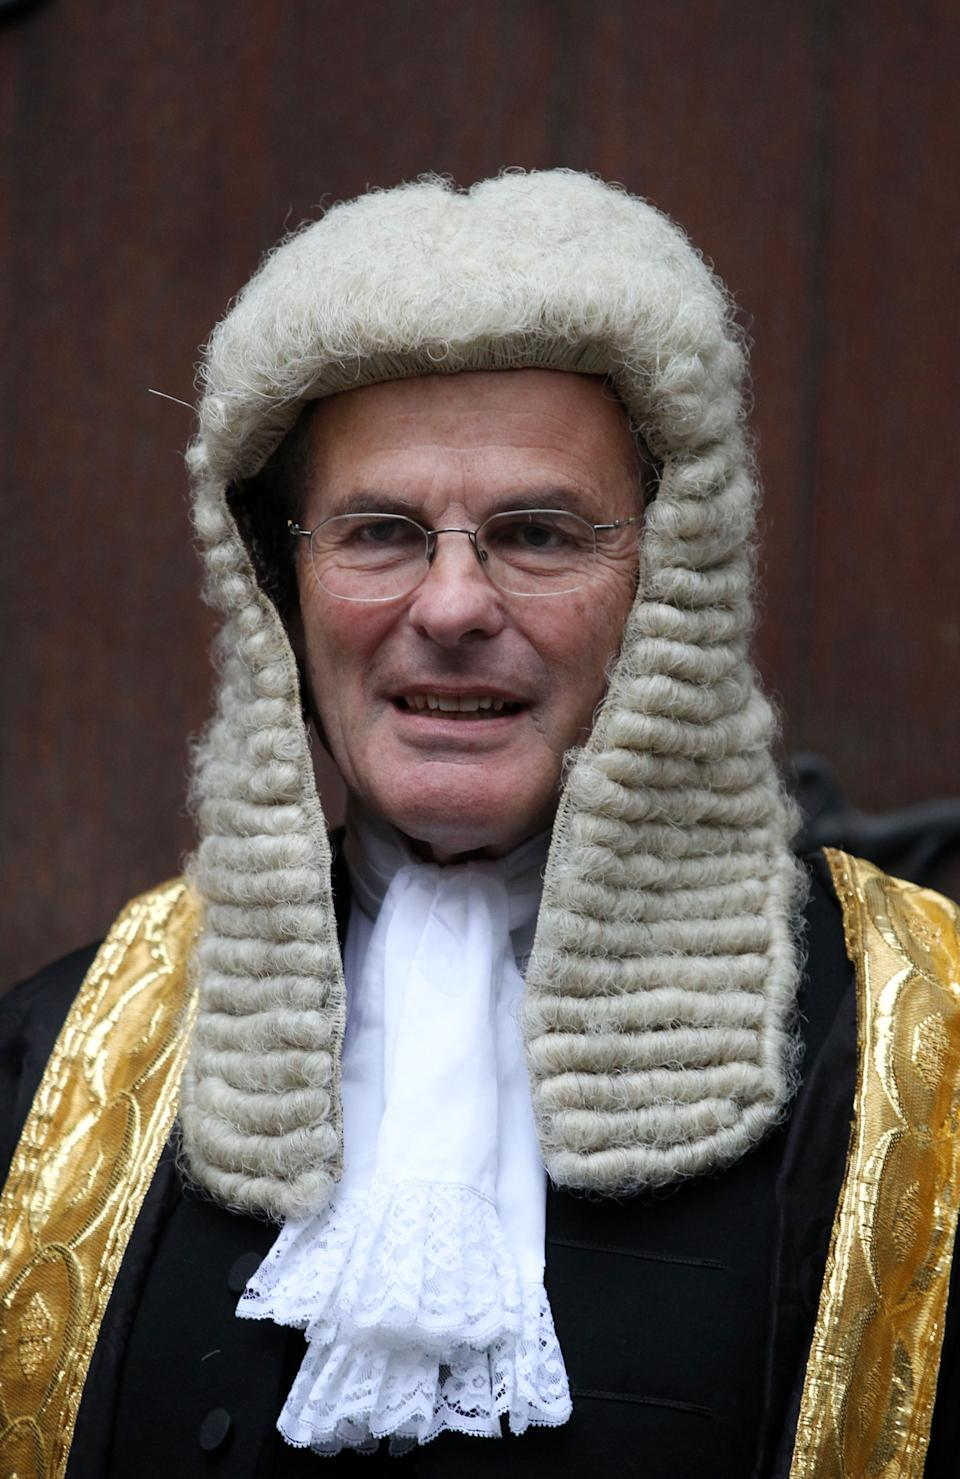 The new Master of the Rolls, Lord Dyson, at The Royal Courts of Justice,The Strand, London.   (Photo by Lewis Whyld/PA Images via Getty Images)